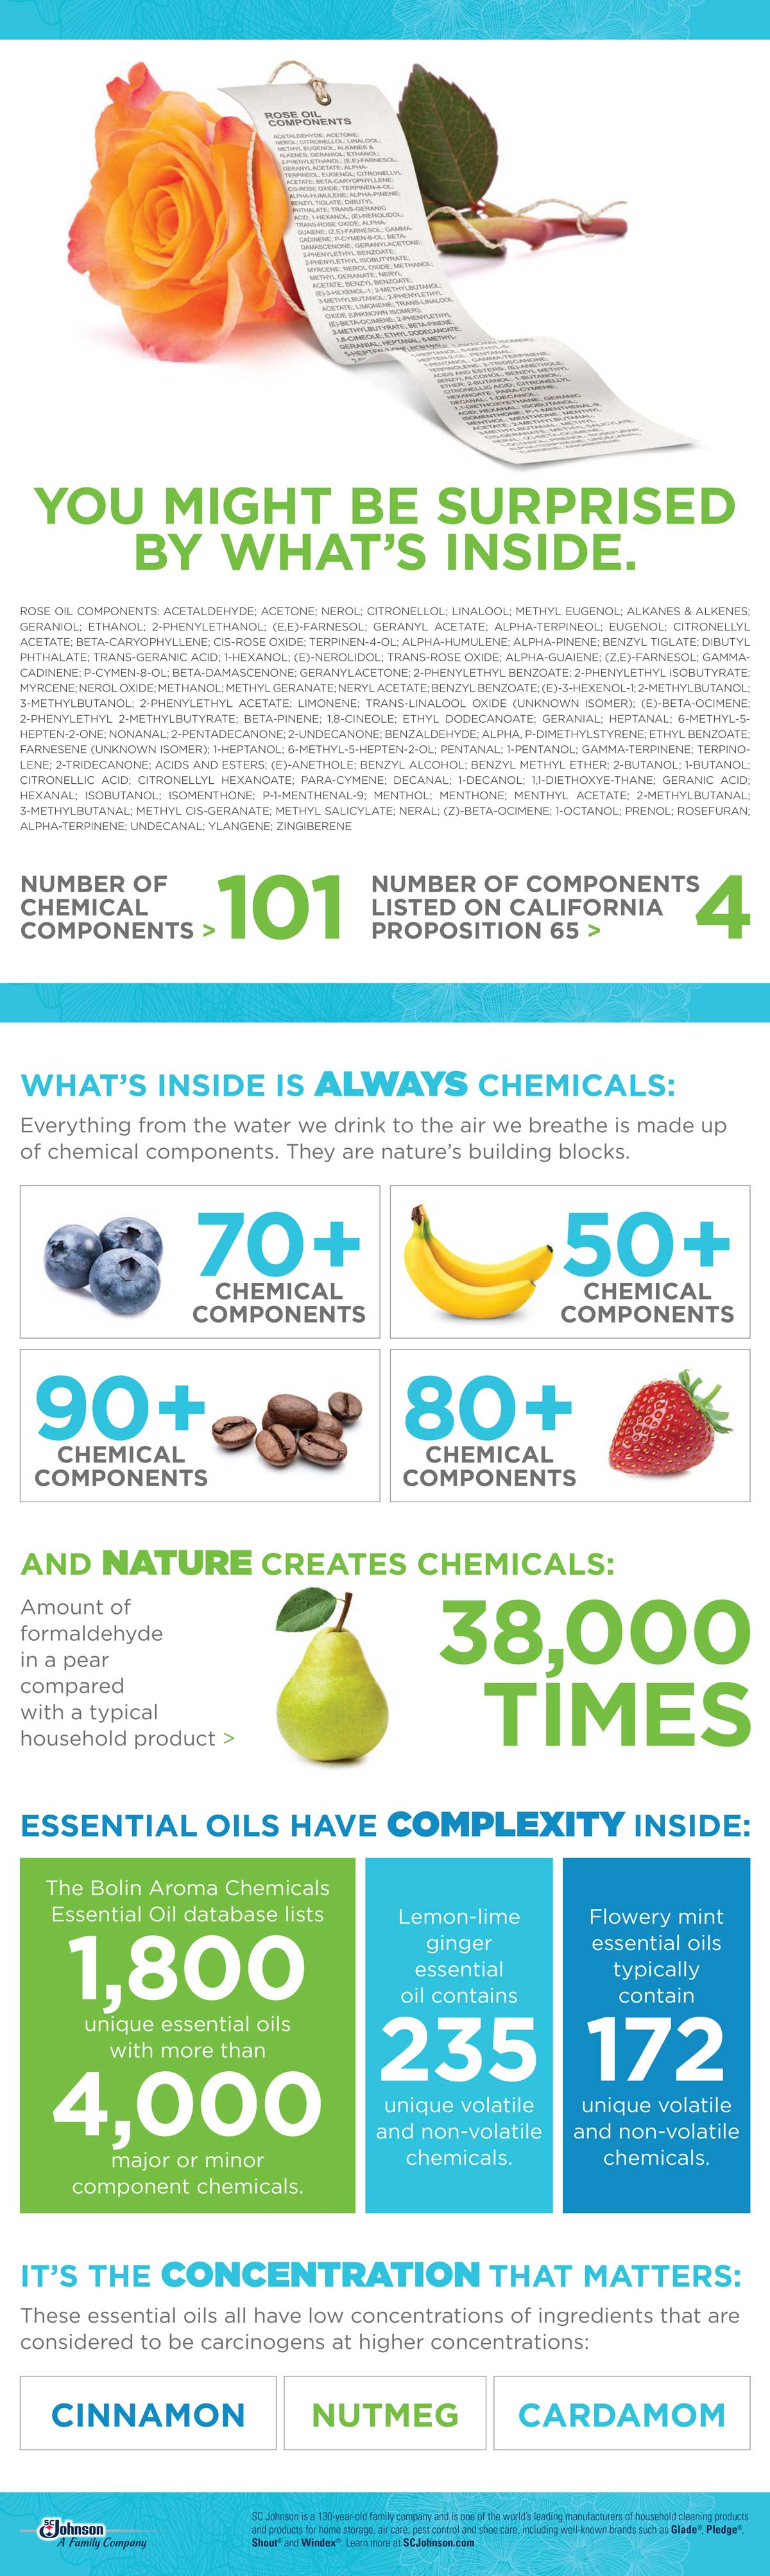 An ingredient transparency infographic from SC Johnson